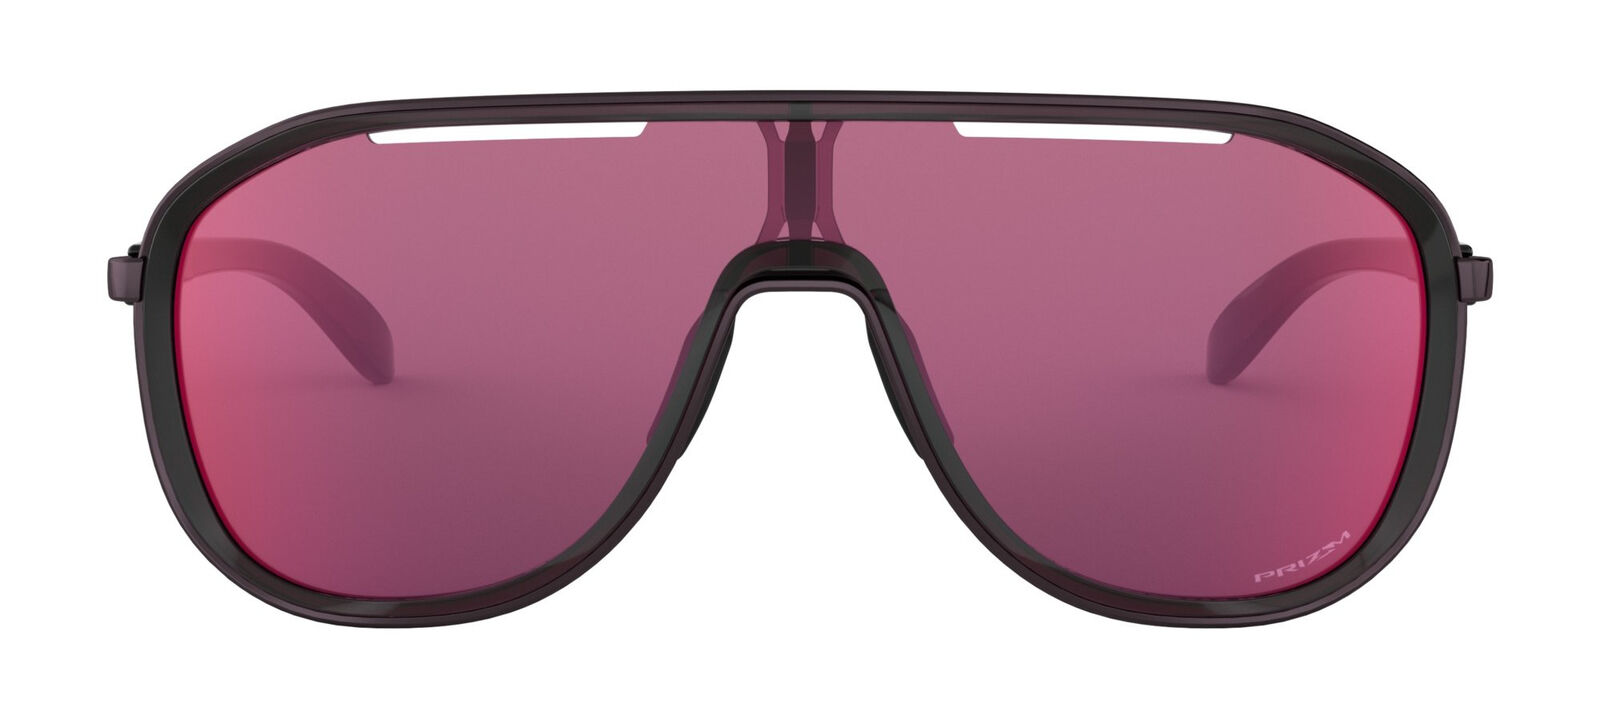 d1a4b051963 Oakley Outpace Women s Sunglasses with Crystal Raspberry Frame and ...